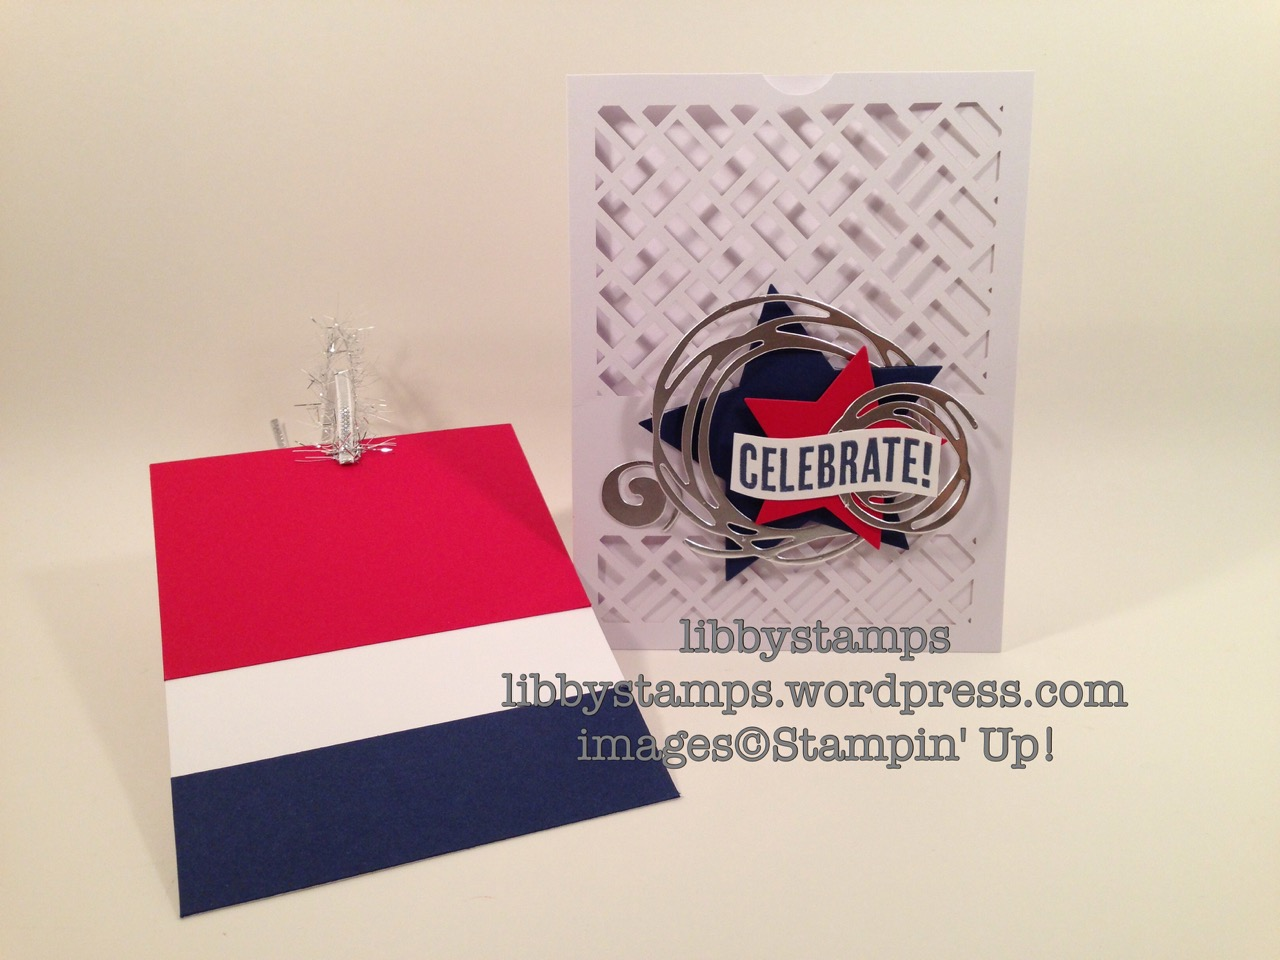 libbystamps, stampin up, Many Manly Occasions, May Paper Pumpkin, Swirly Scribbles Thinlits, Stars Framelits, Silver Foil